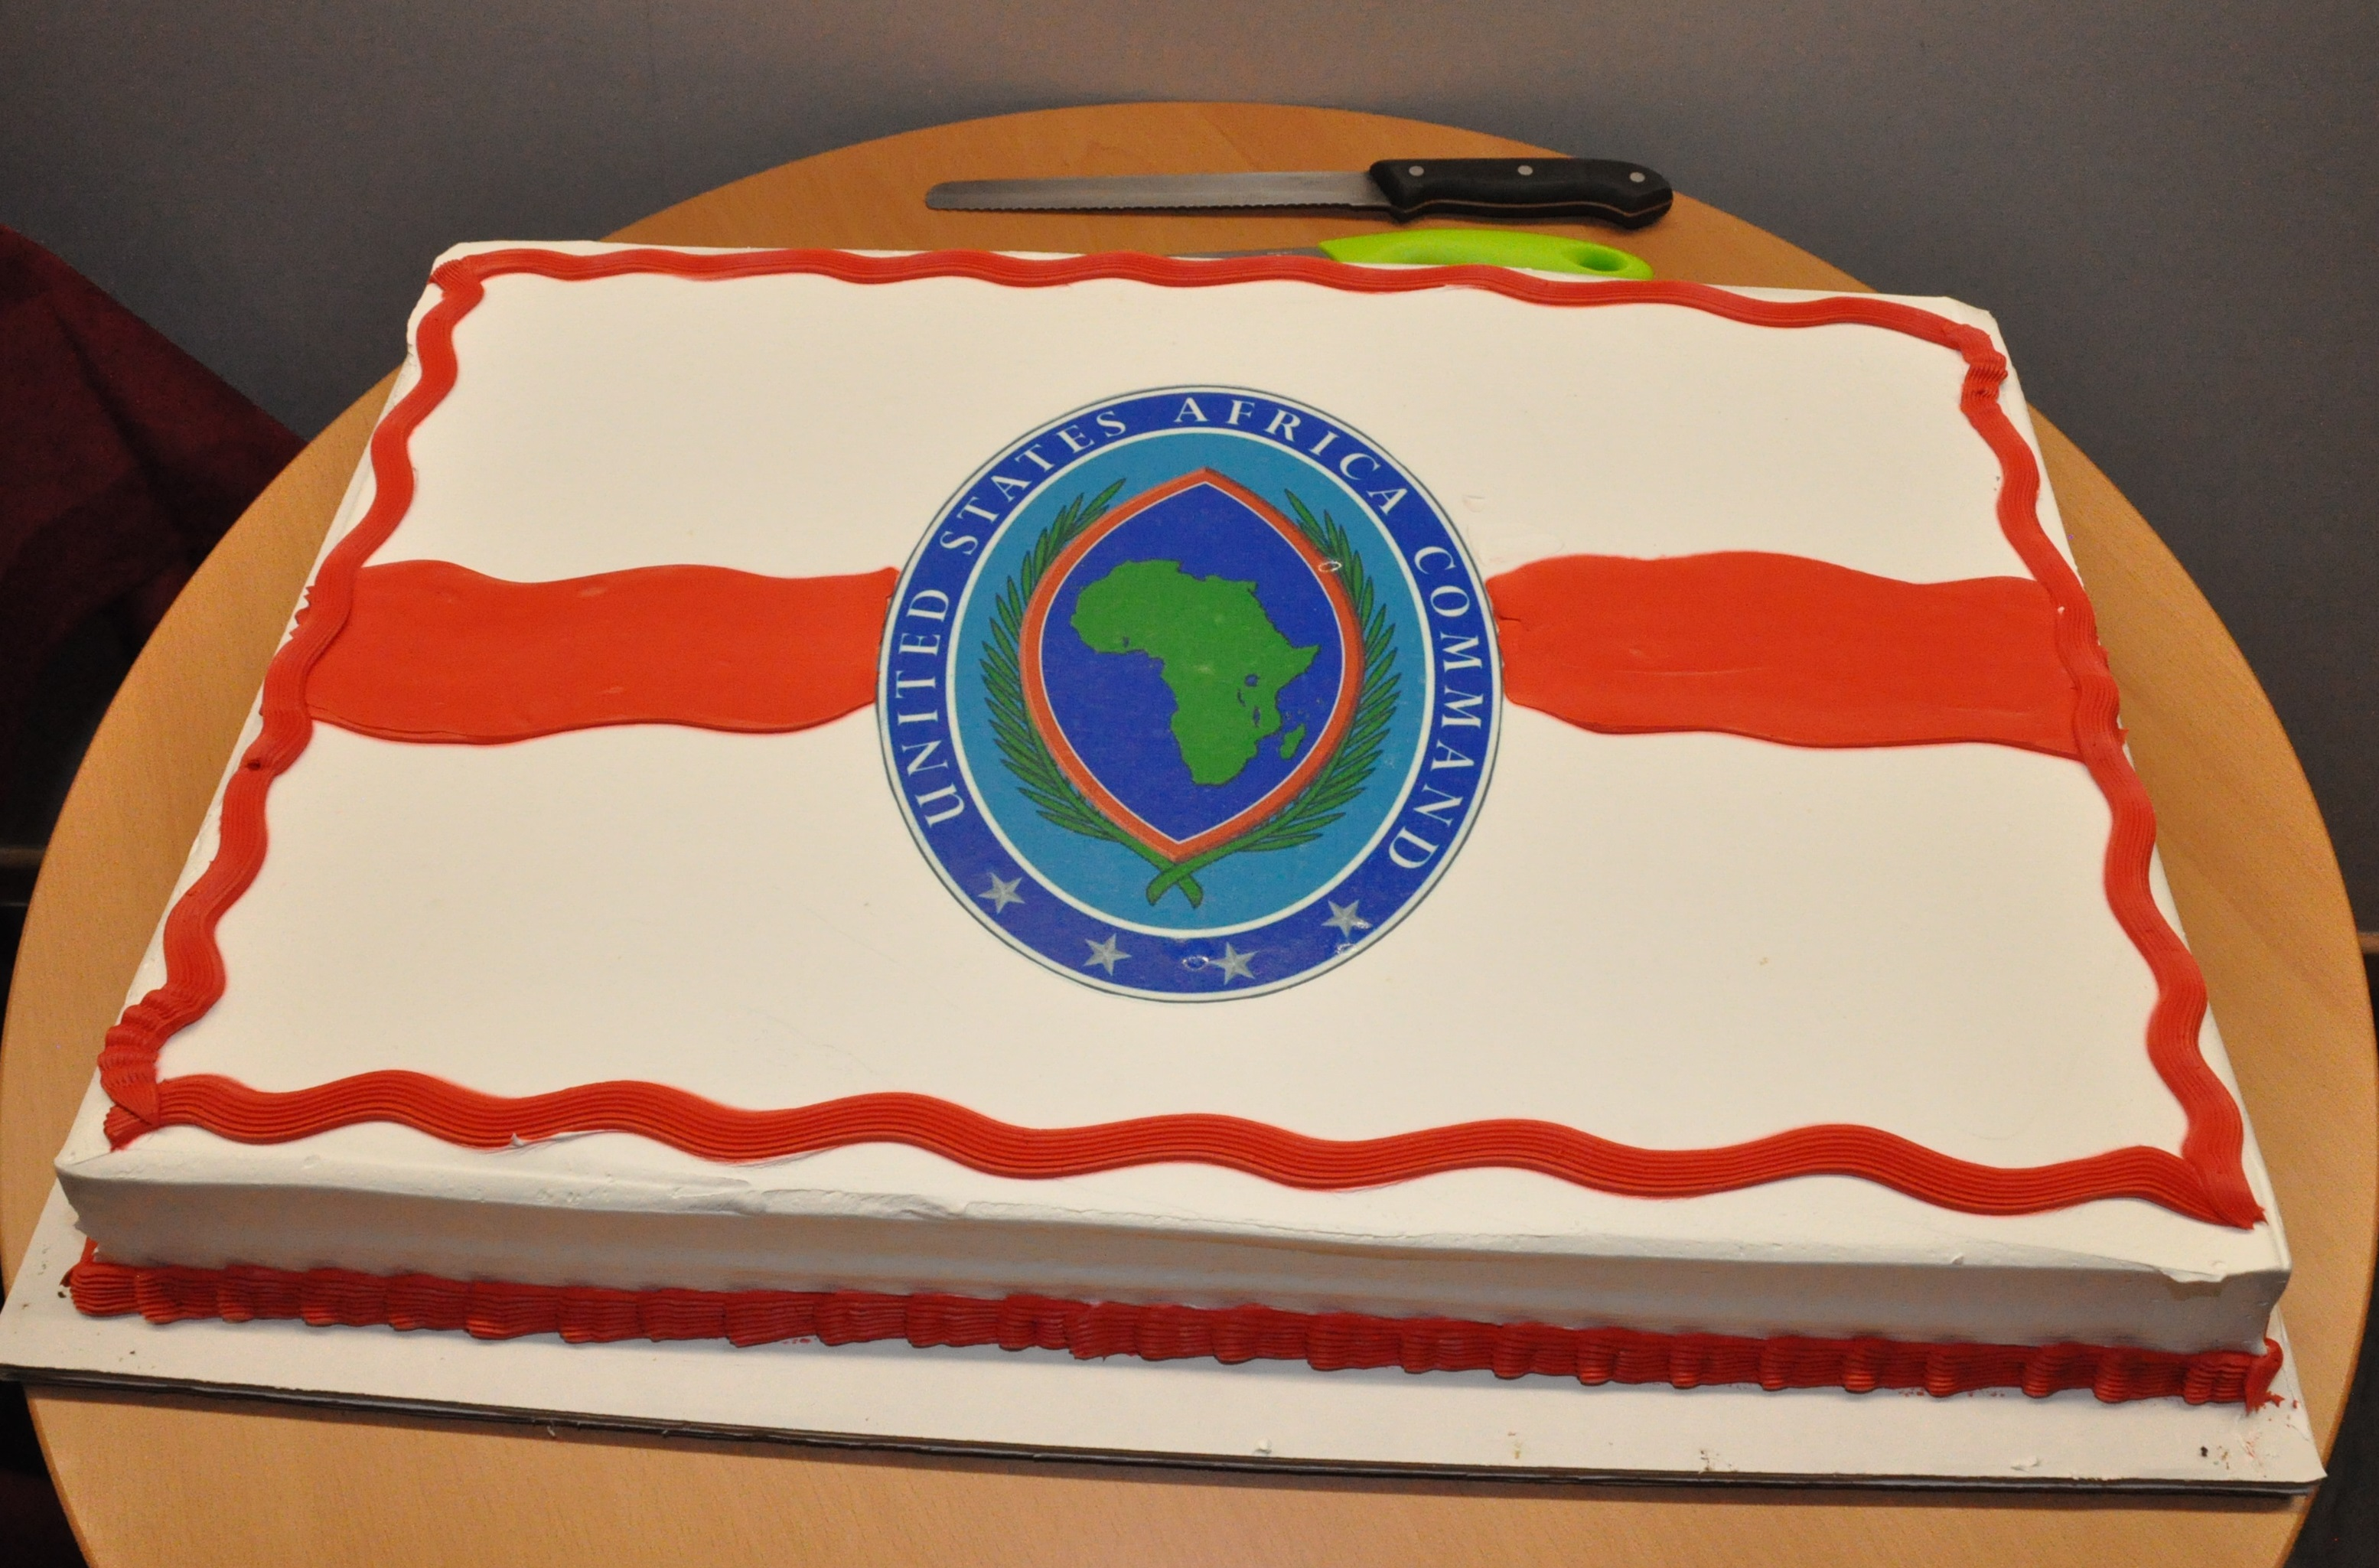 Yummy - and yes, we have cake! – A cake with the AFRICOM logo was served during an open house event for the new joint operations center, Feb. 5, 2016, U.S. Army Garrison Stuttgart, Germany. (U.S. Africa Command photo by Brenda Law/RELEASED)